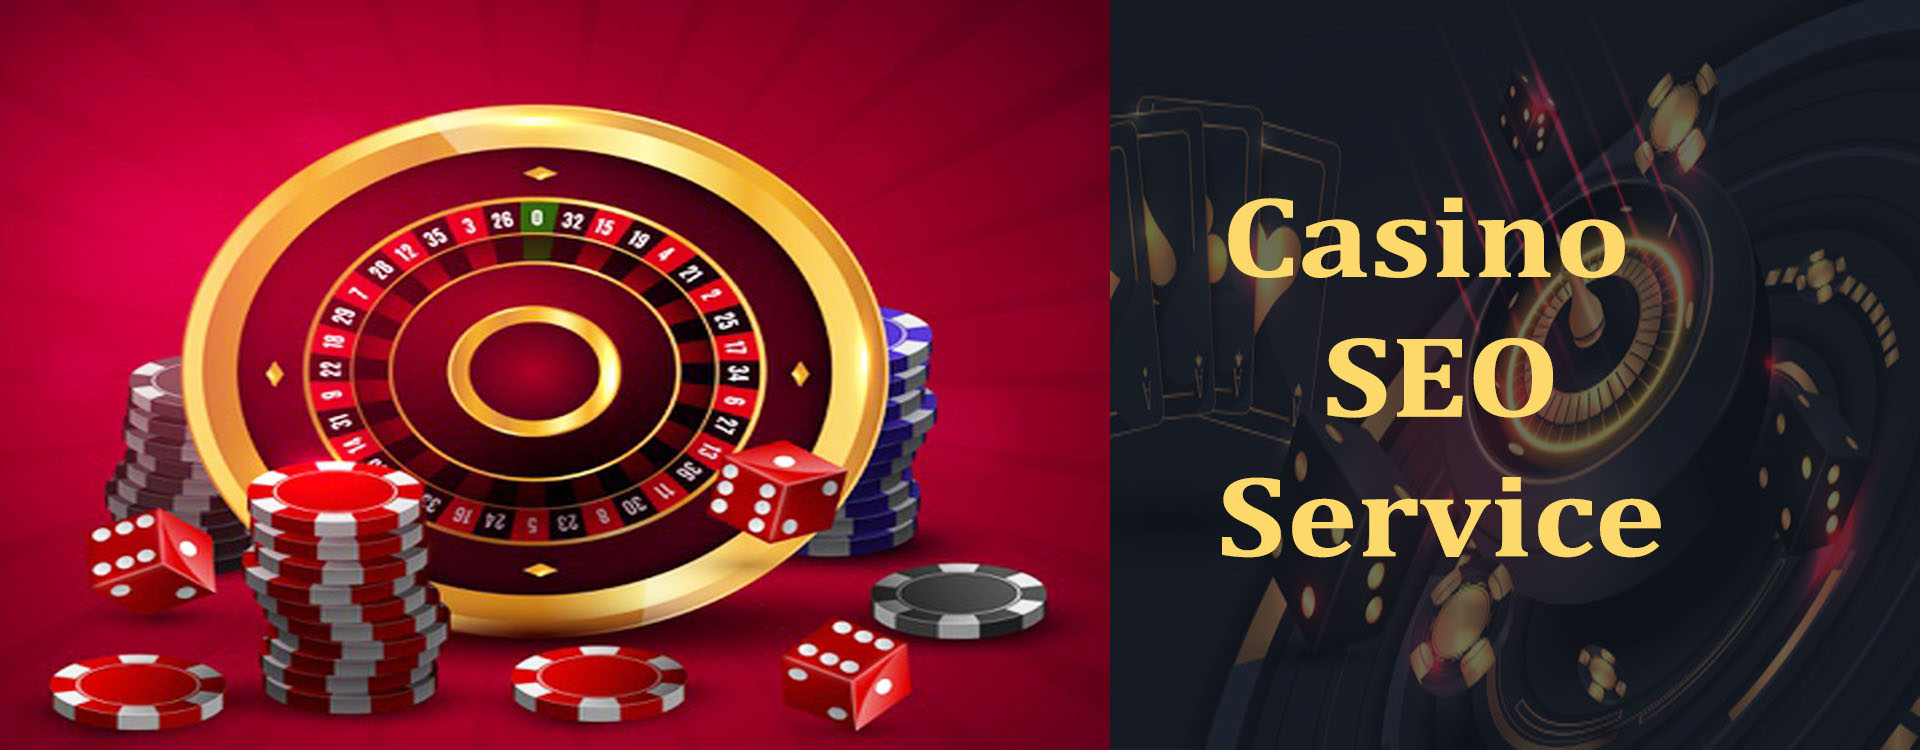 Online-casino SEO Strategies - Learn With golden Crown Au